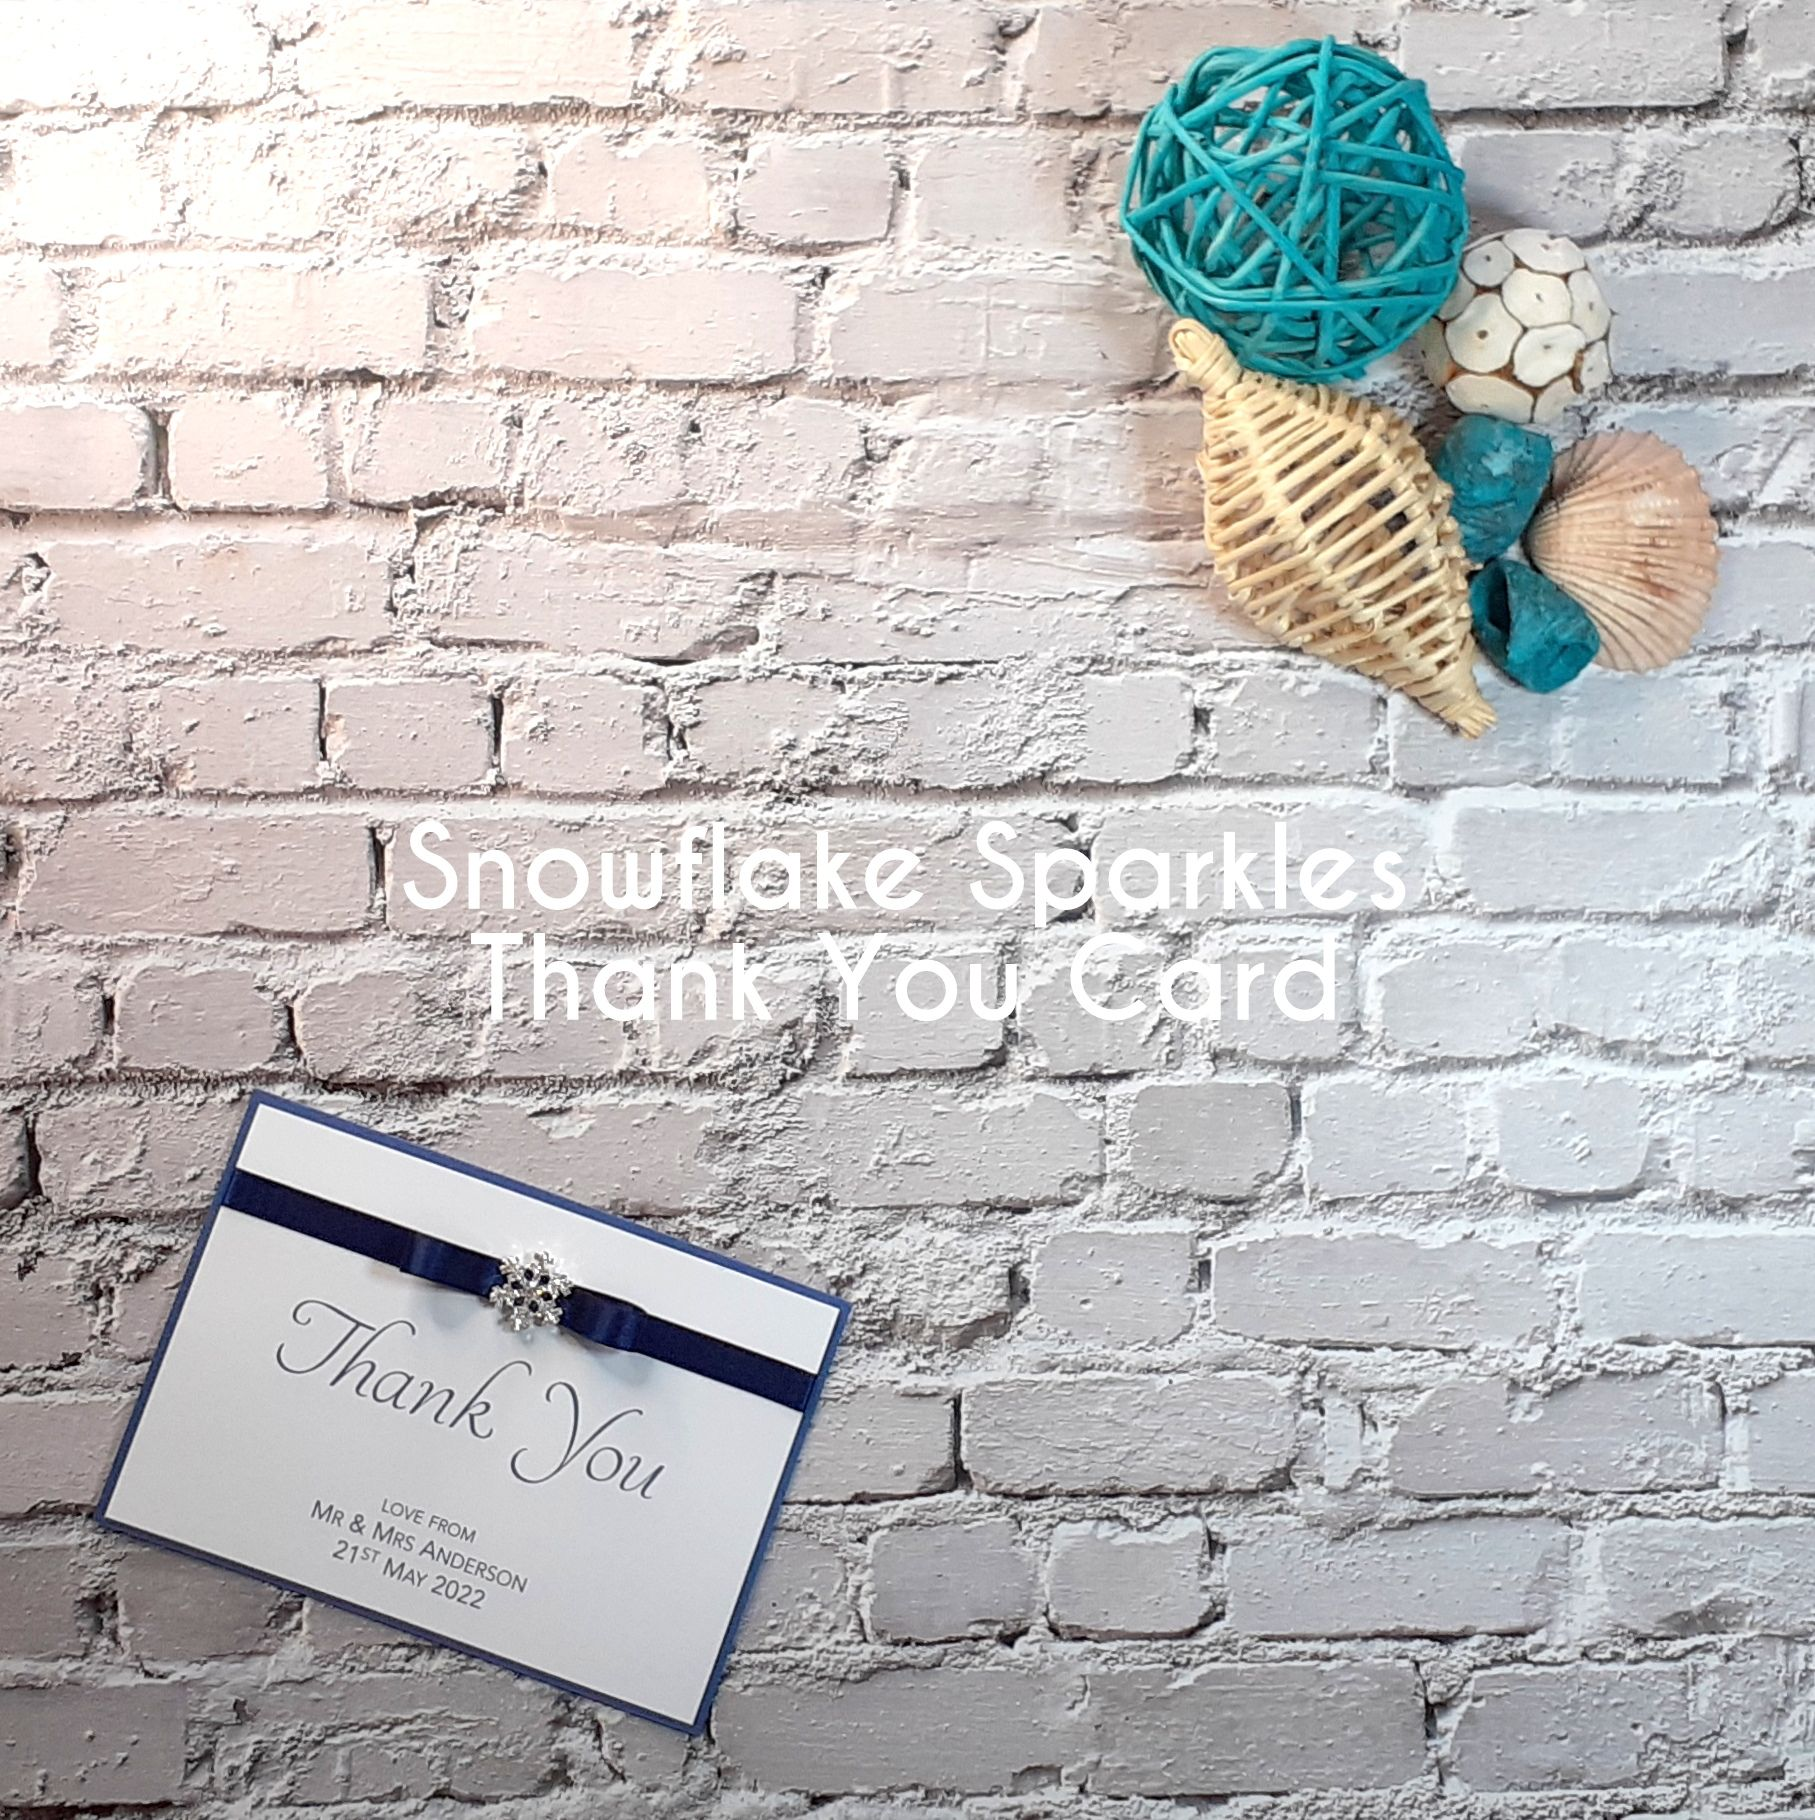 Snowlfake Sparkles Thank You Card